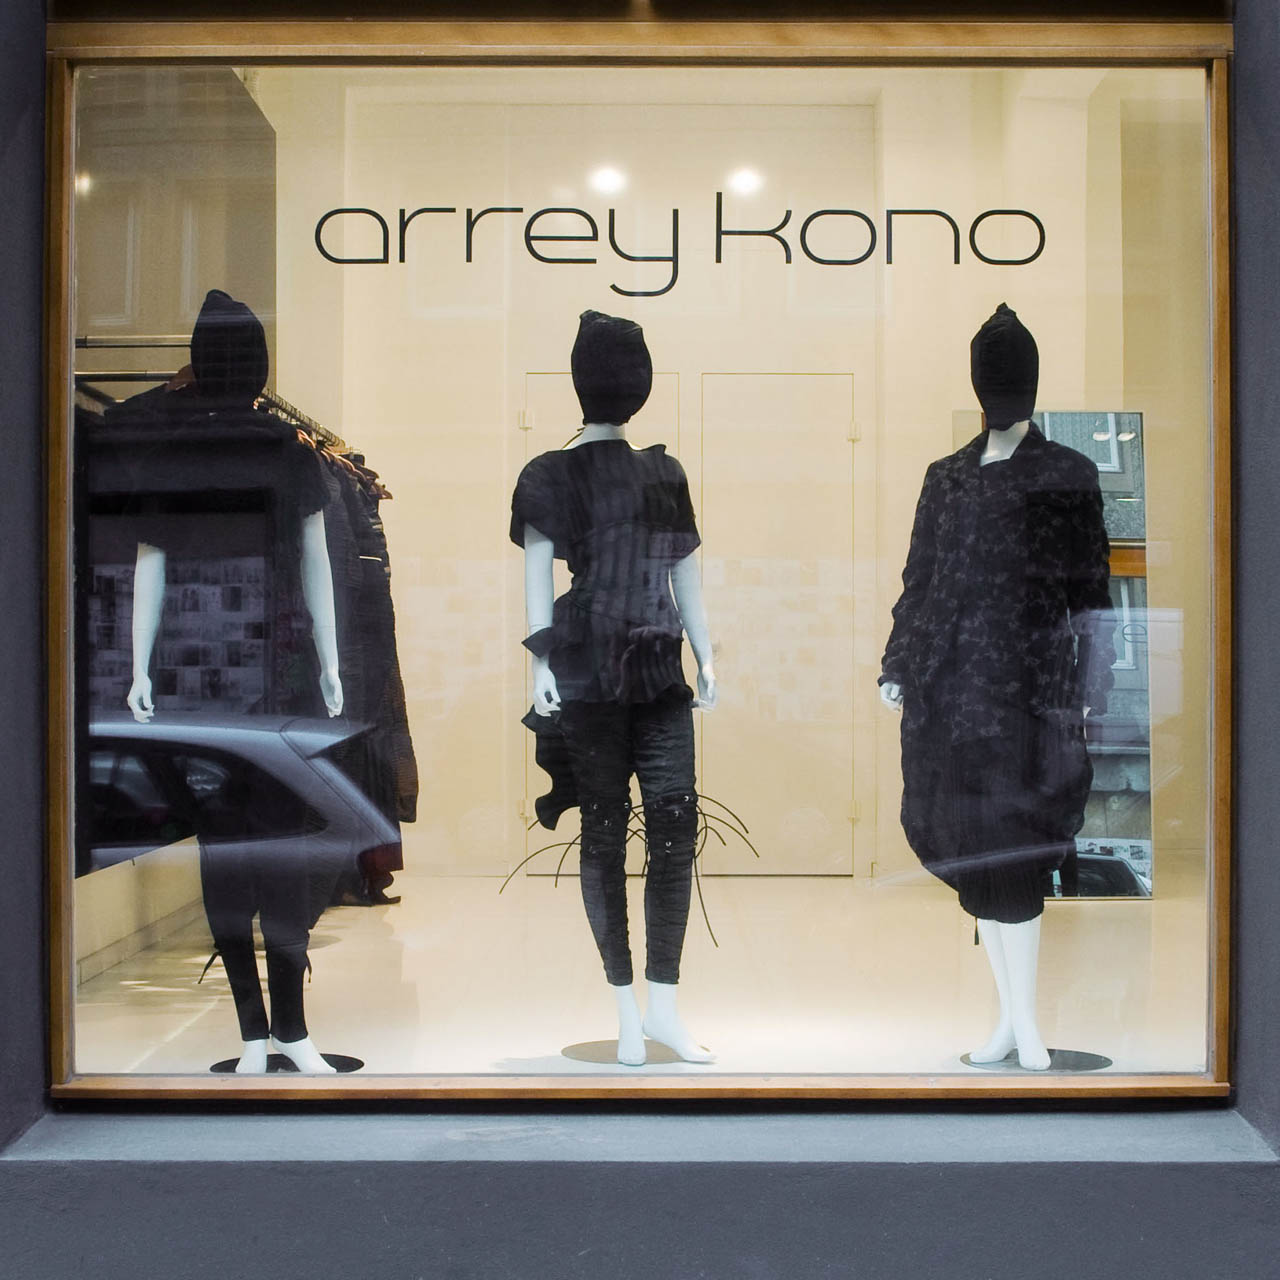 array kono shop, Berlin - Mitte Resopal GmbH